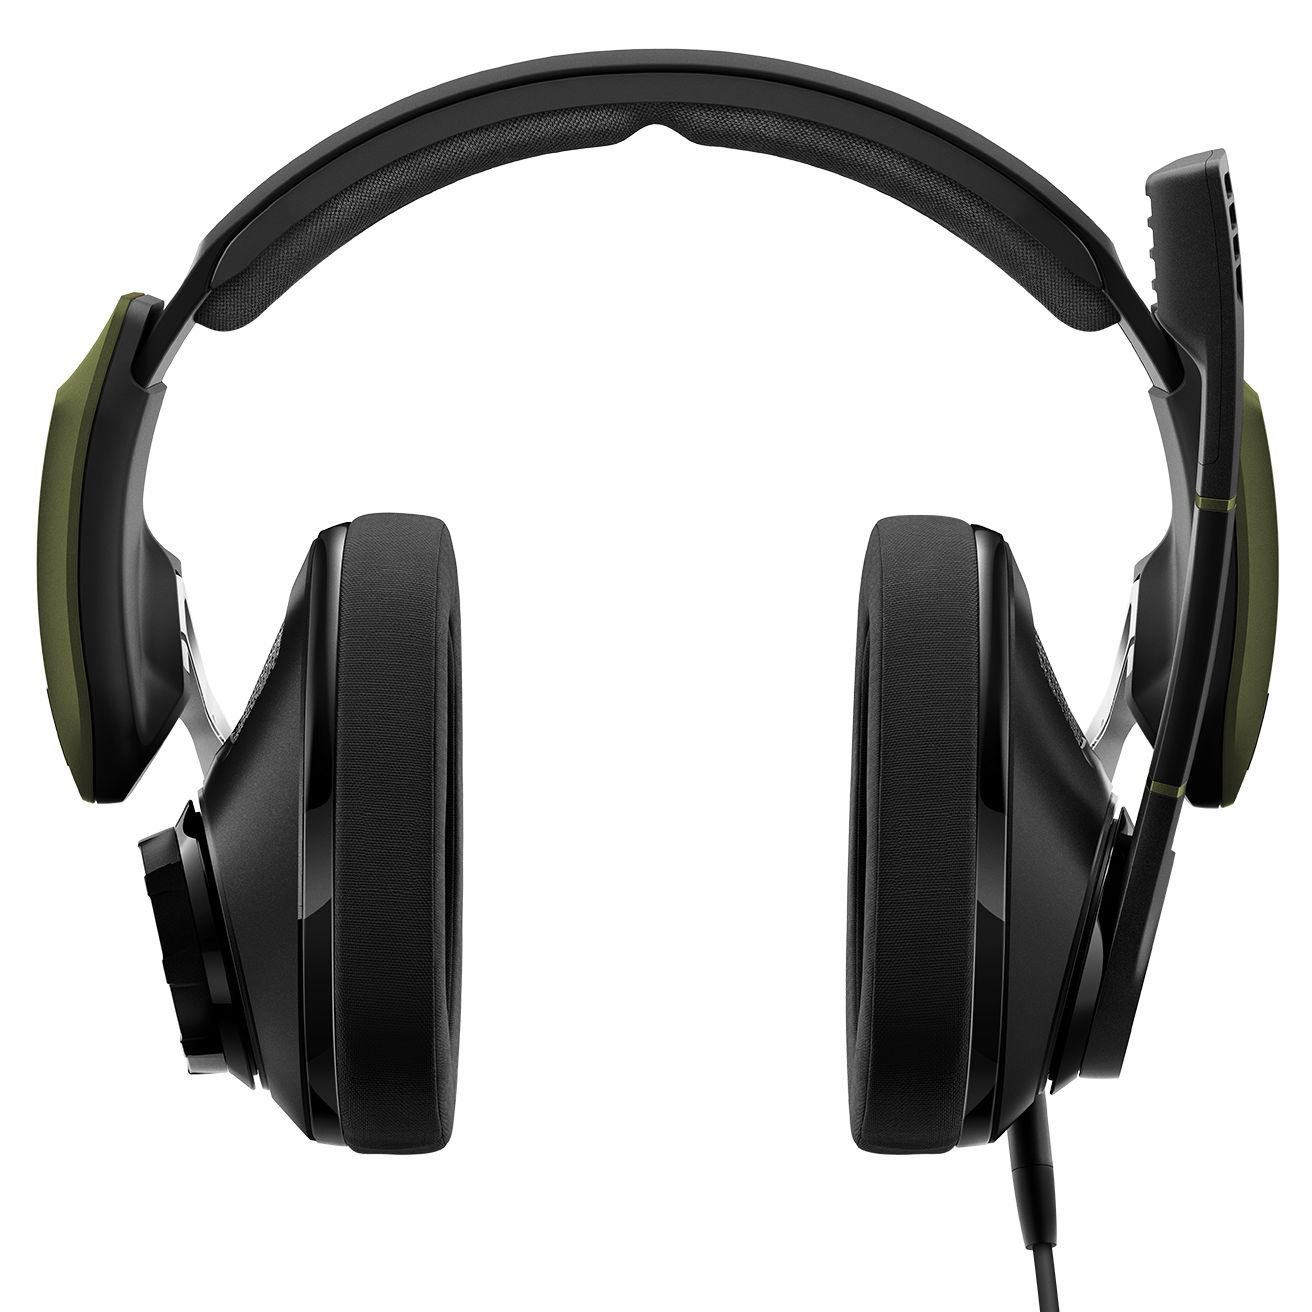 Sennheiser GSP 550 7.1 Dolby Surround Sound Gaming Headset for  image